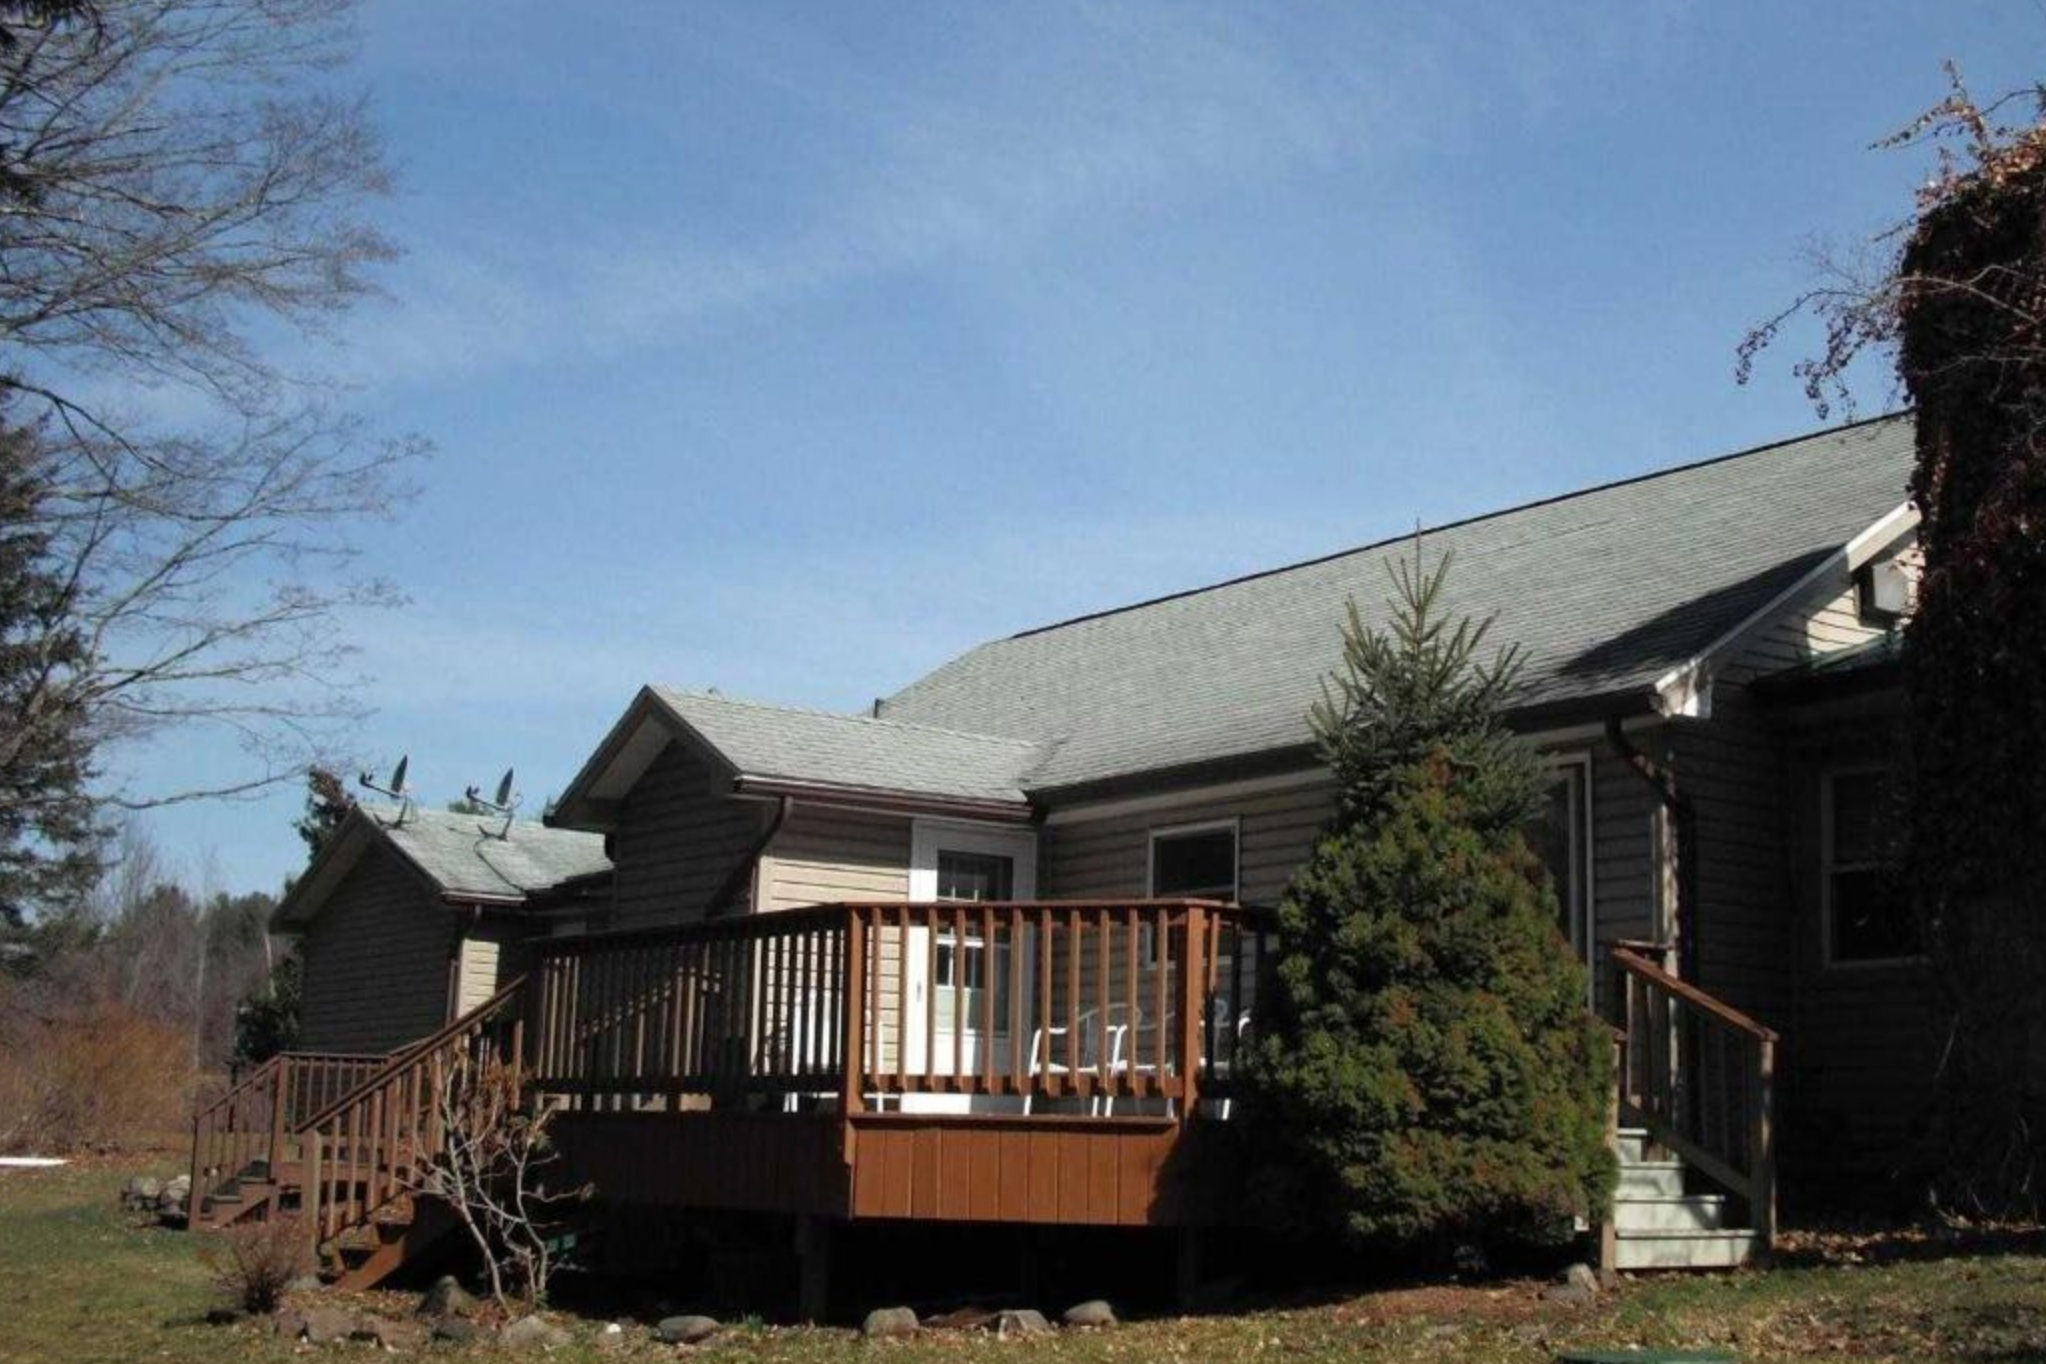 Black Bear Lodge  11985 Route 23A Lexington, NY 12452 (518) 989-6582  Click  here  to book room.  Distance: 23.5 miles / 30 minutes Capacity: 20 people